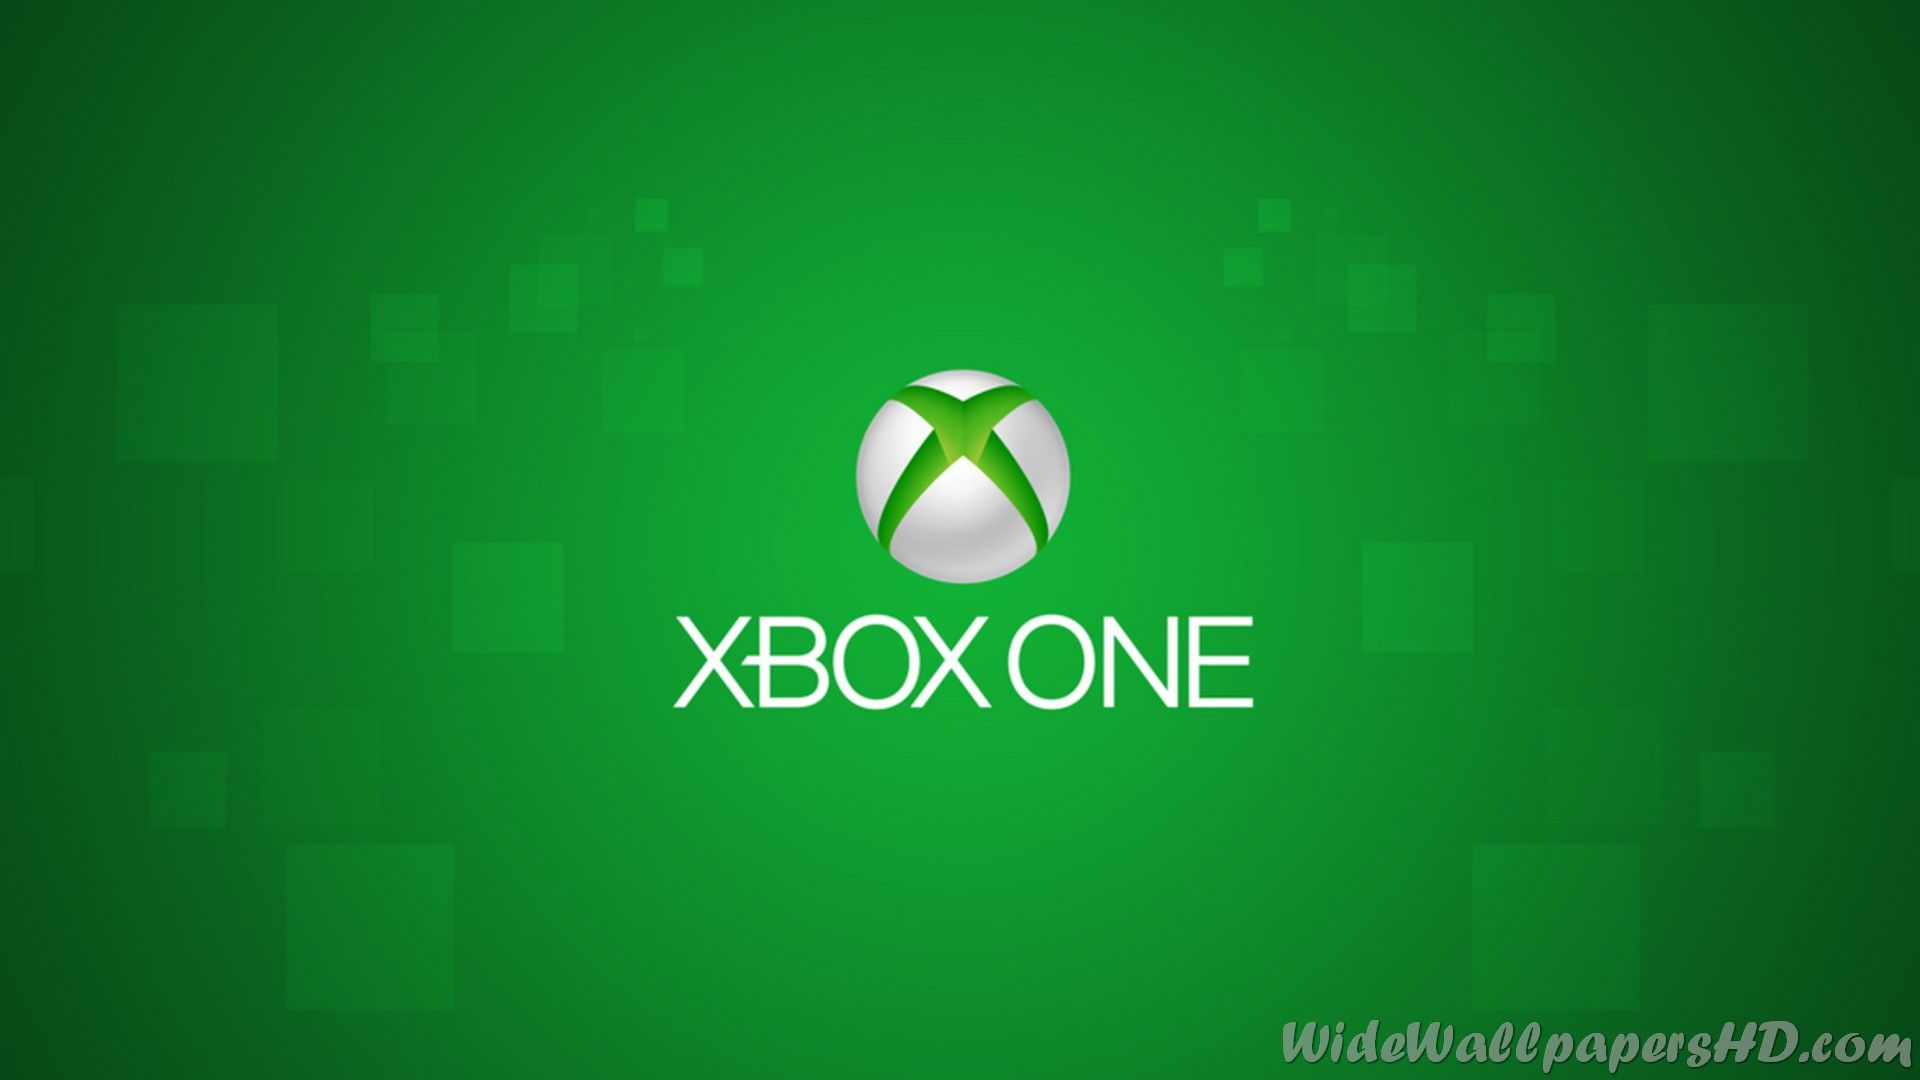 1920x1080 Xbox Wallpaper | Wallpapers 4k | Pinterest | Xbox and Vr headset